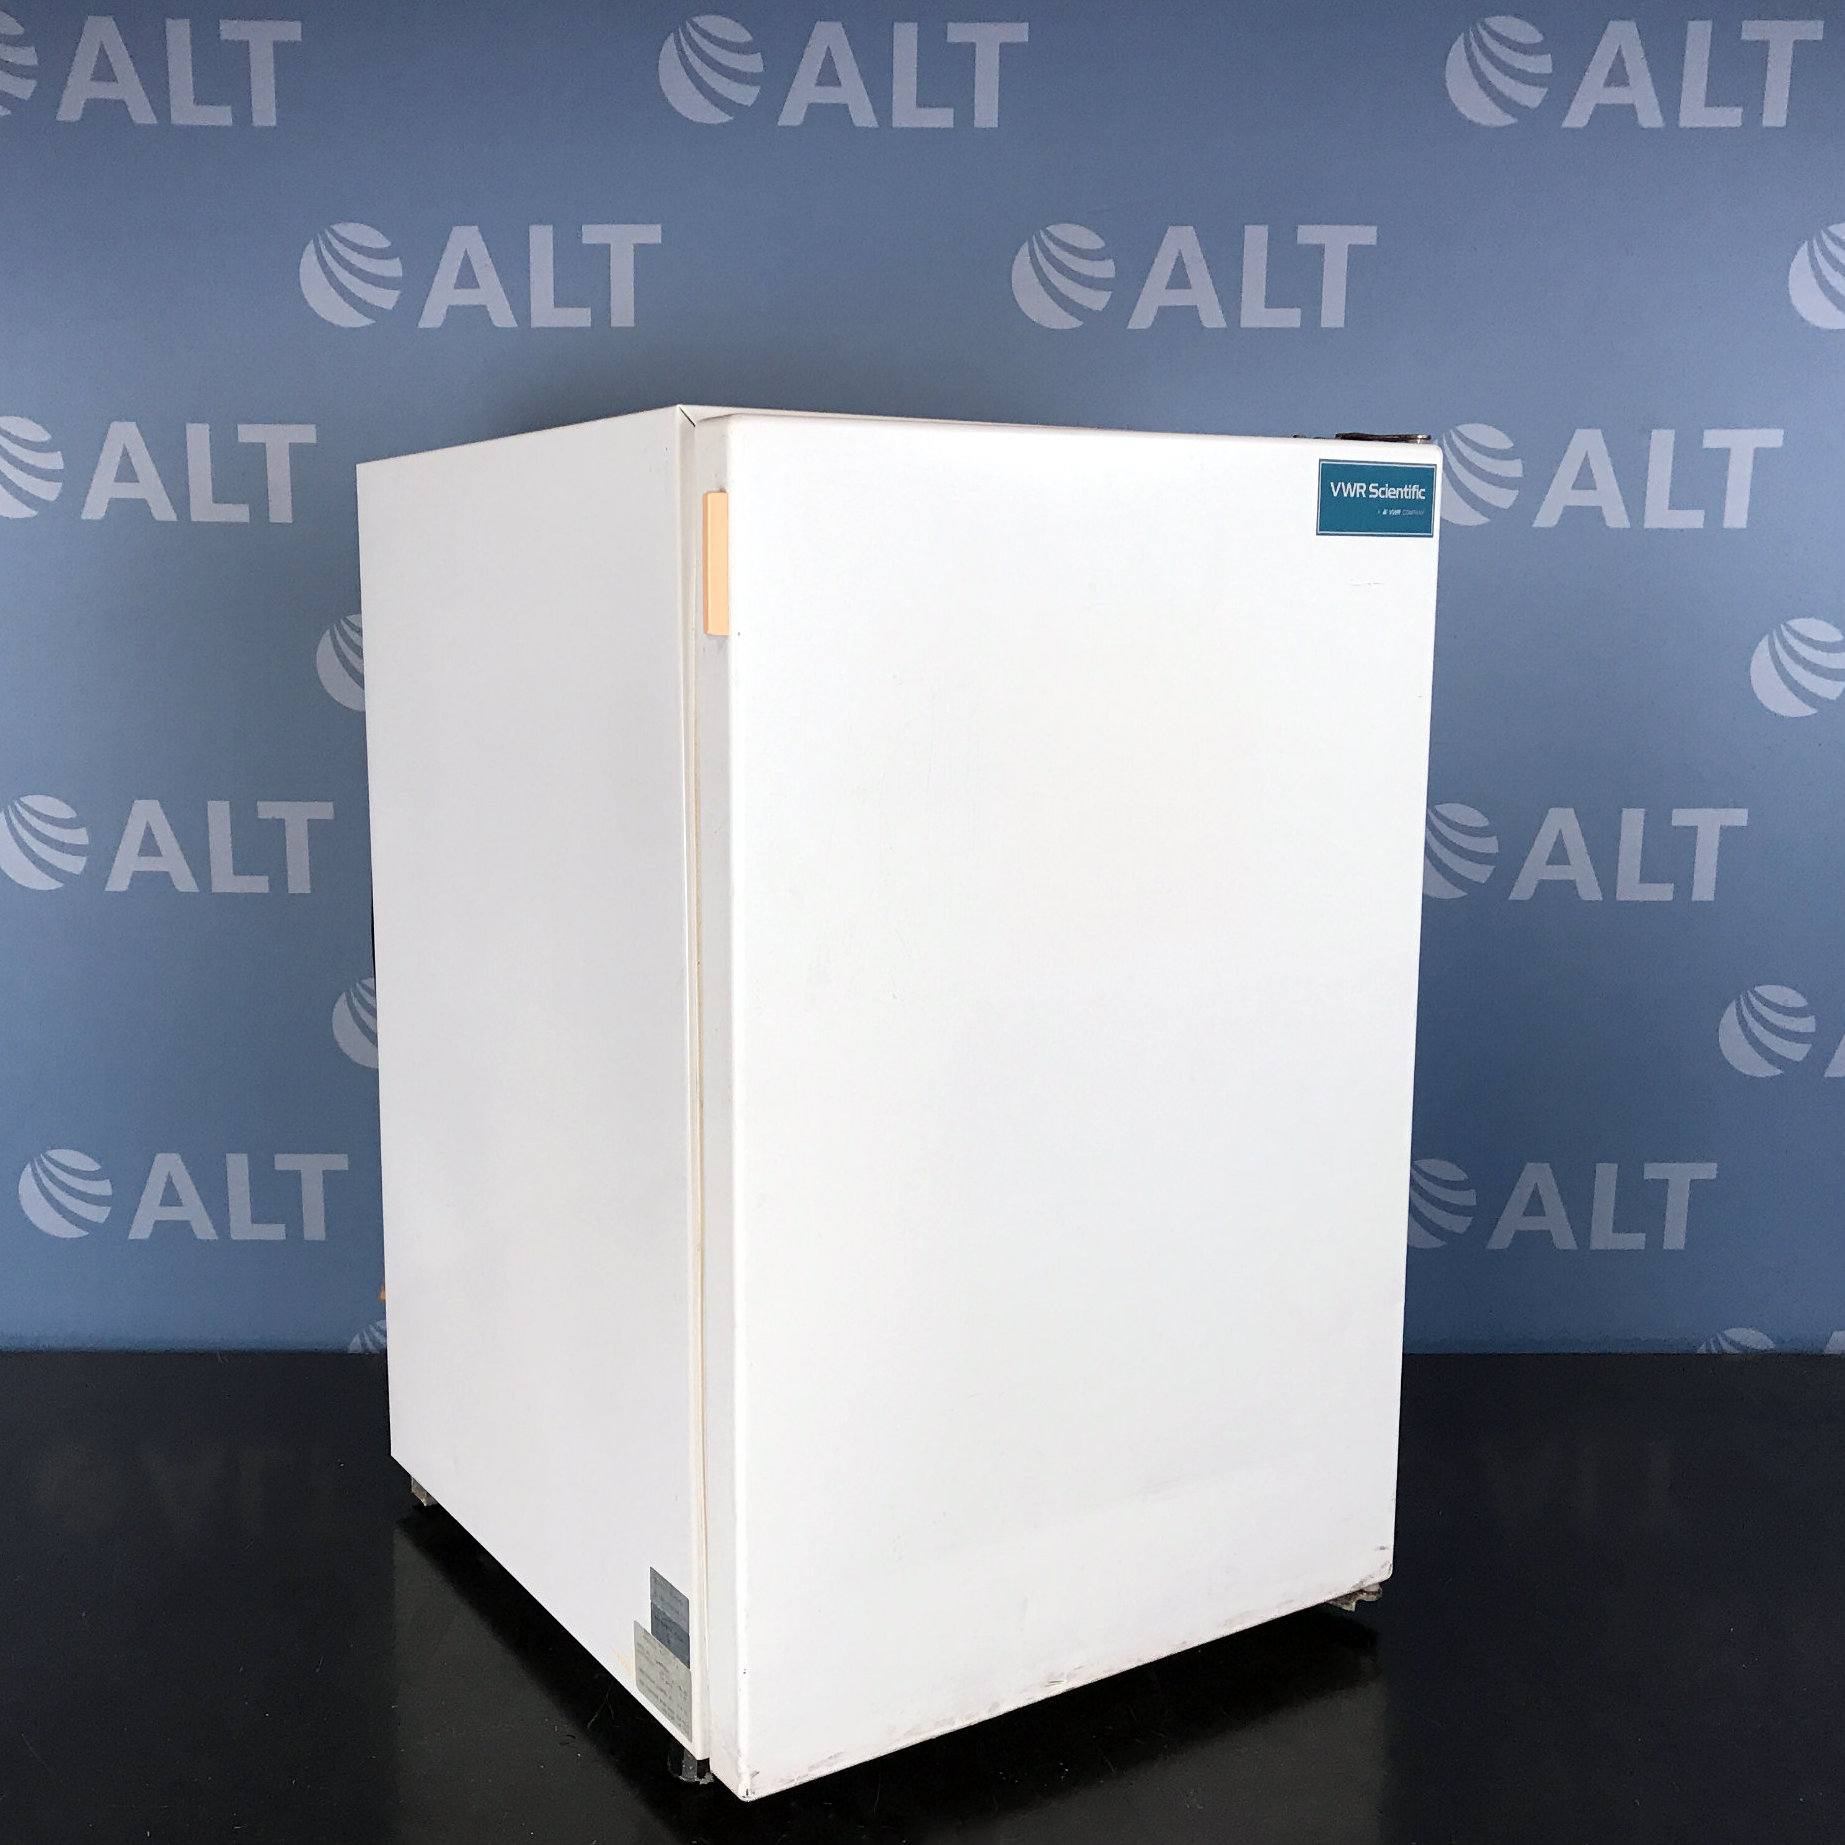 VWR Model U2005GABA Undercounter Lab Freezer Image